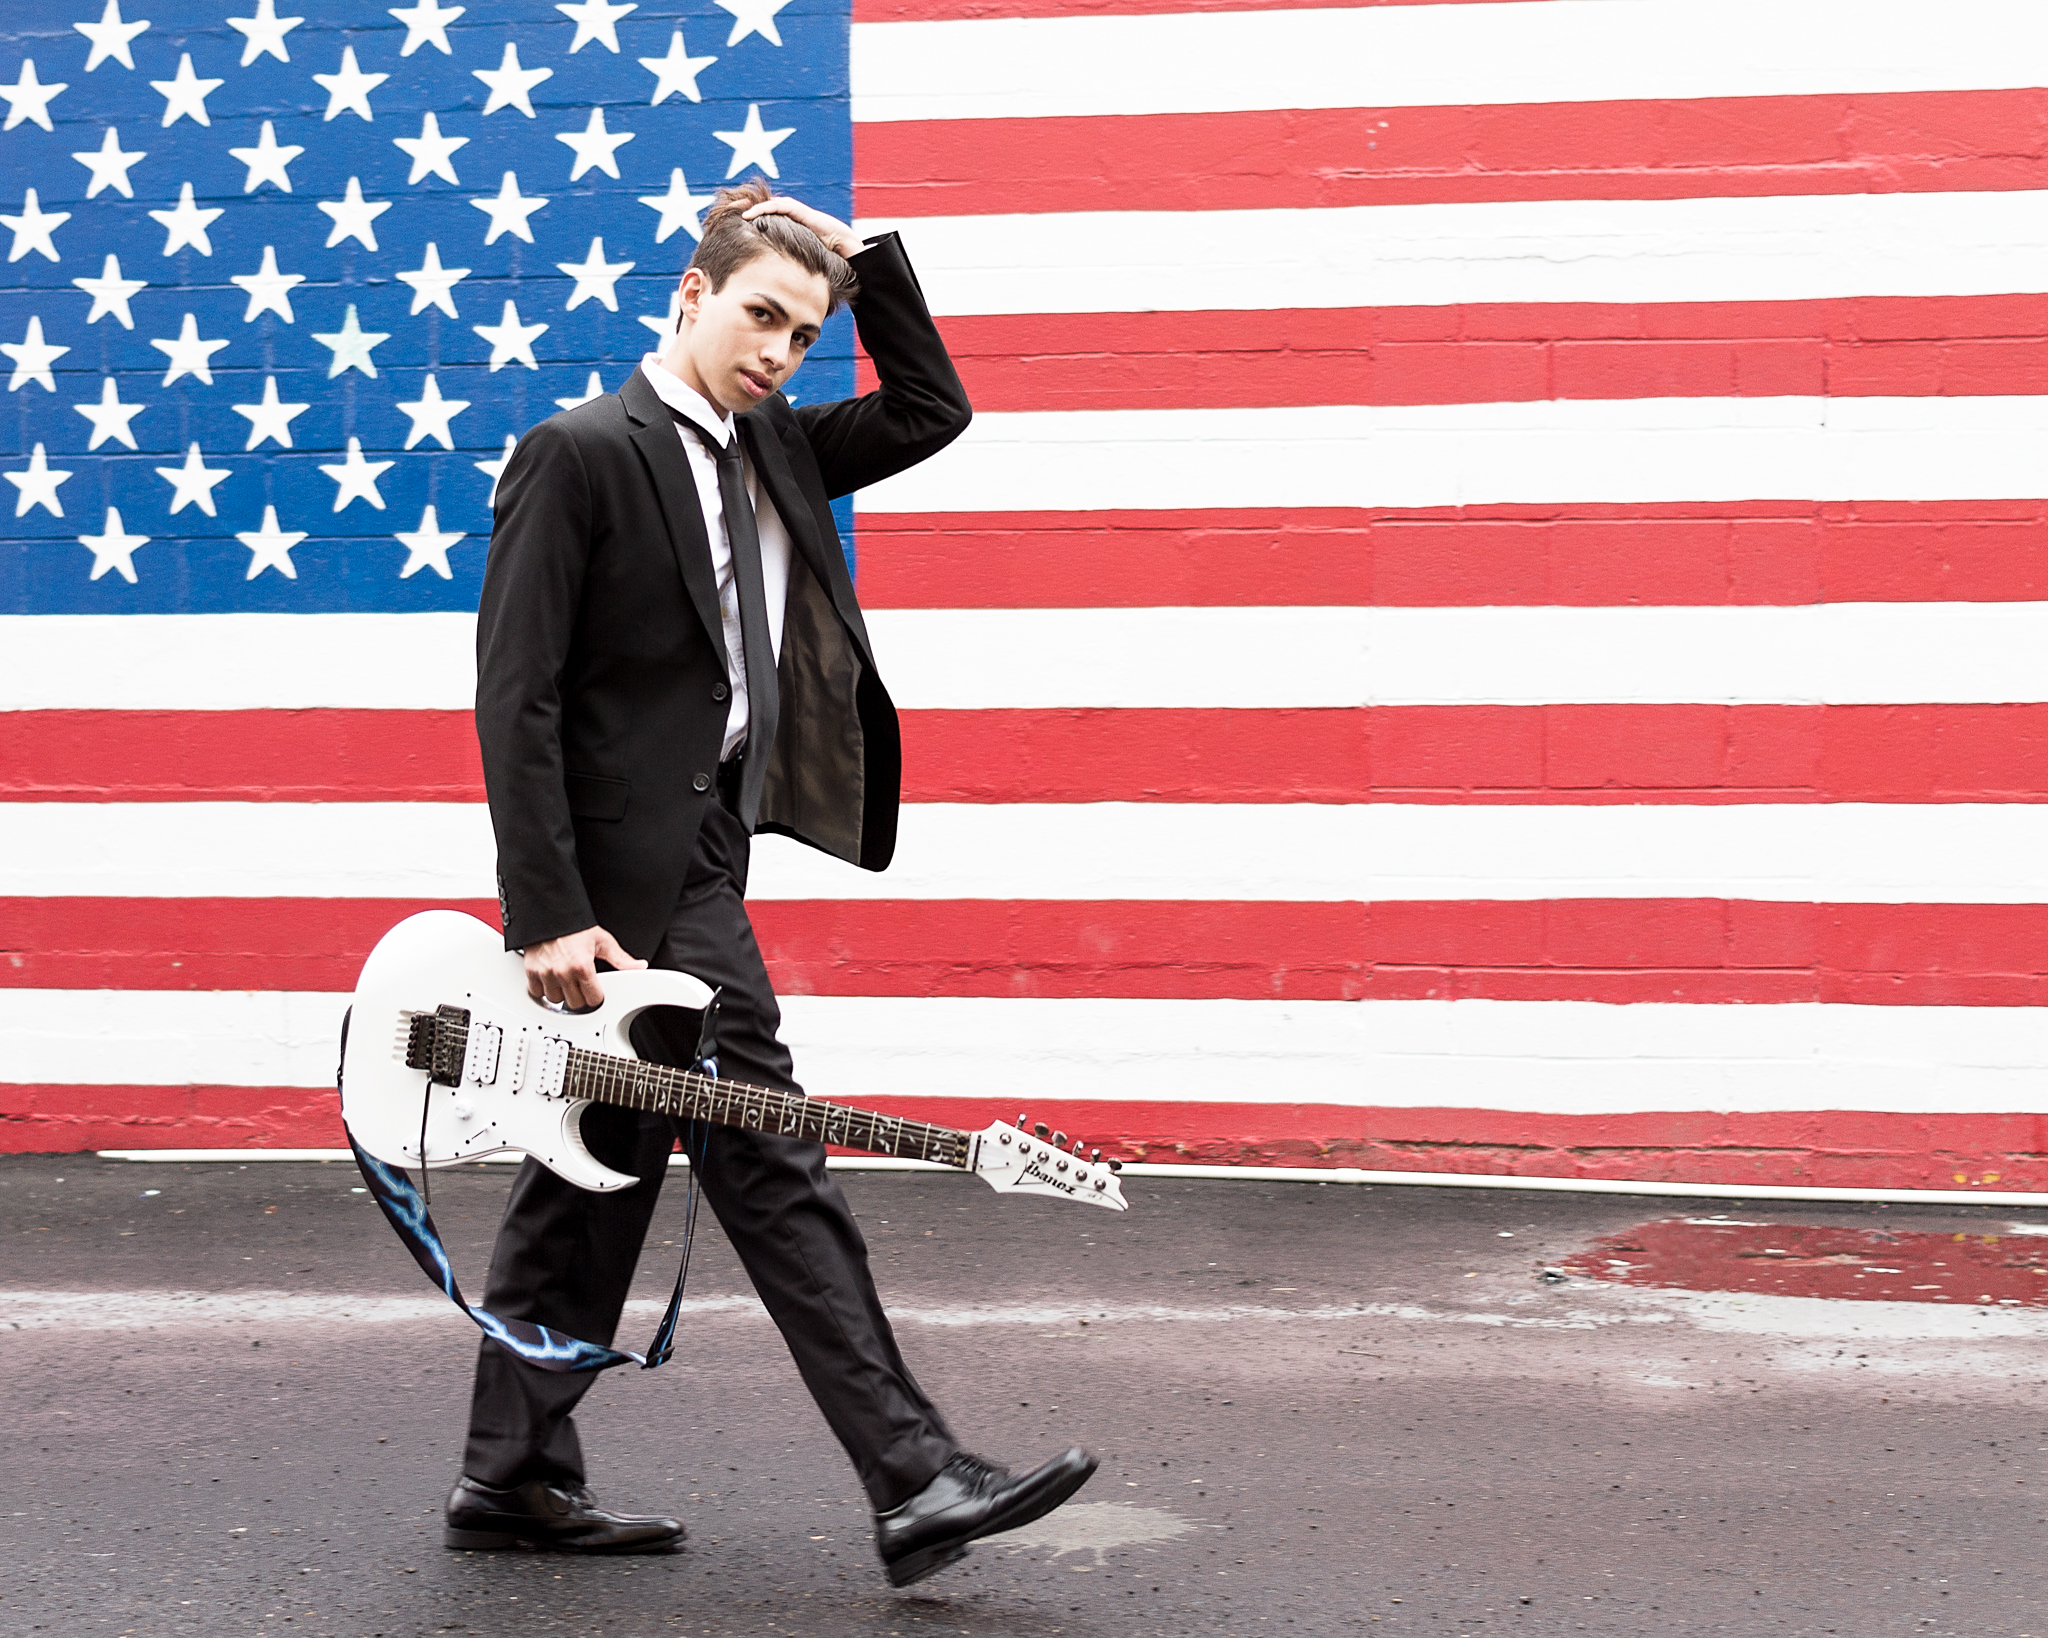 Walking with guitar in front of American Flag